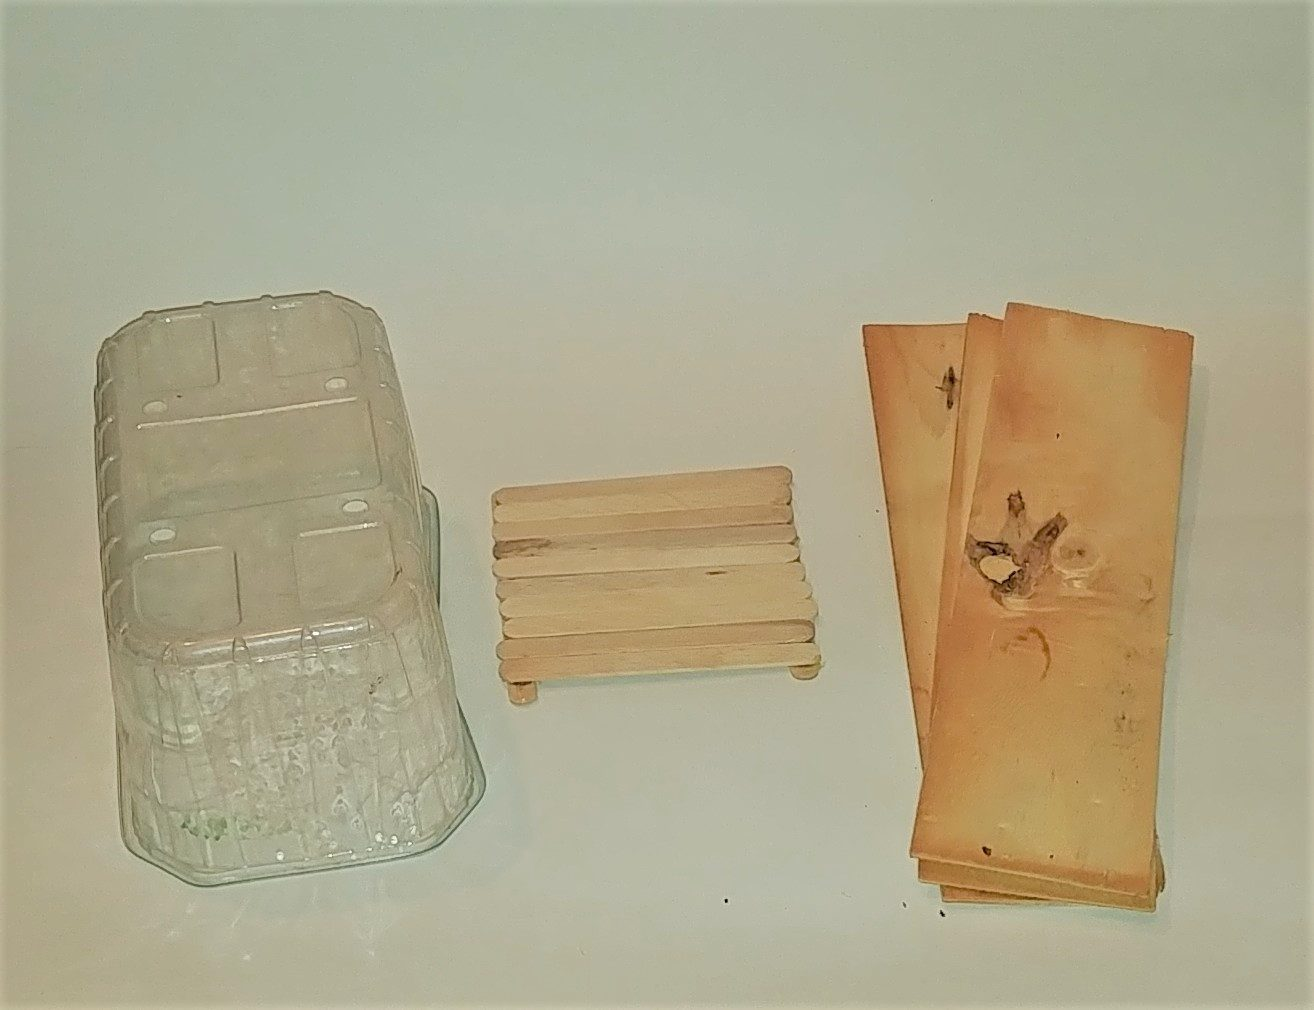 container, popsicle sticks, and wood for fairy house construction